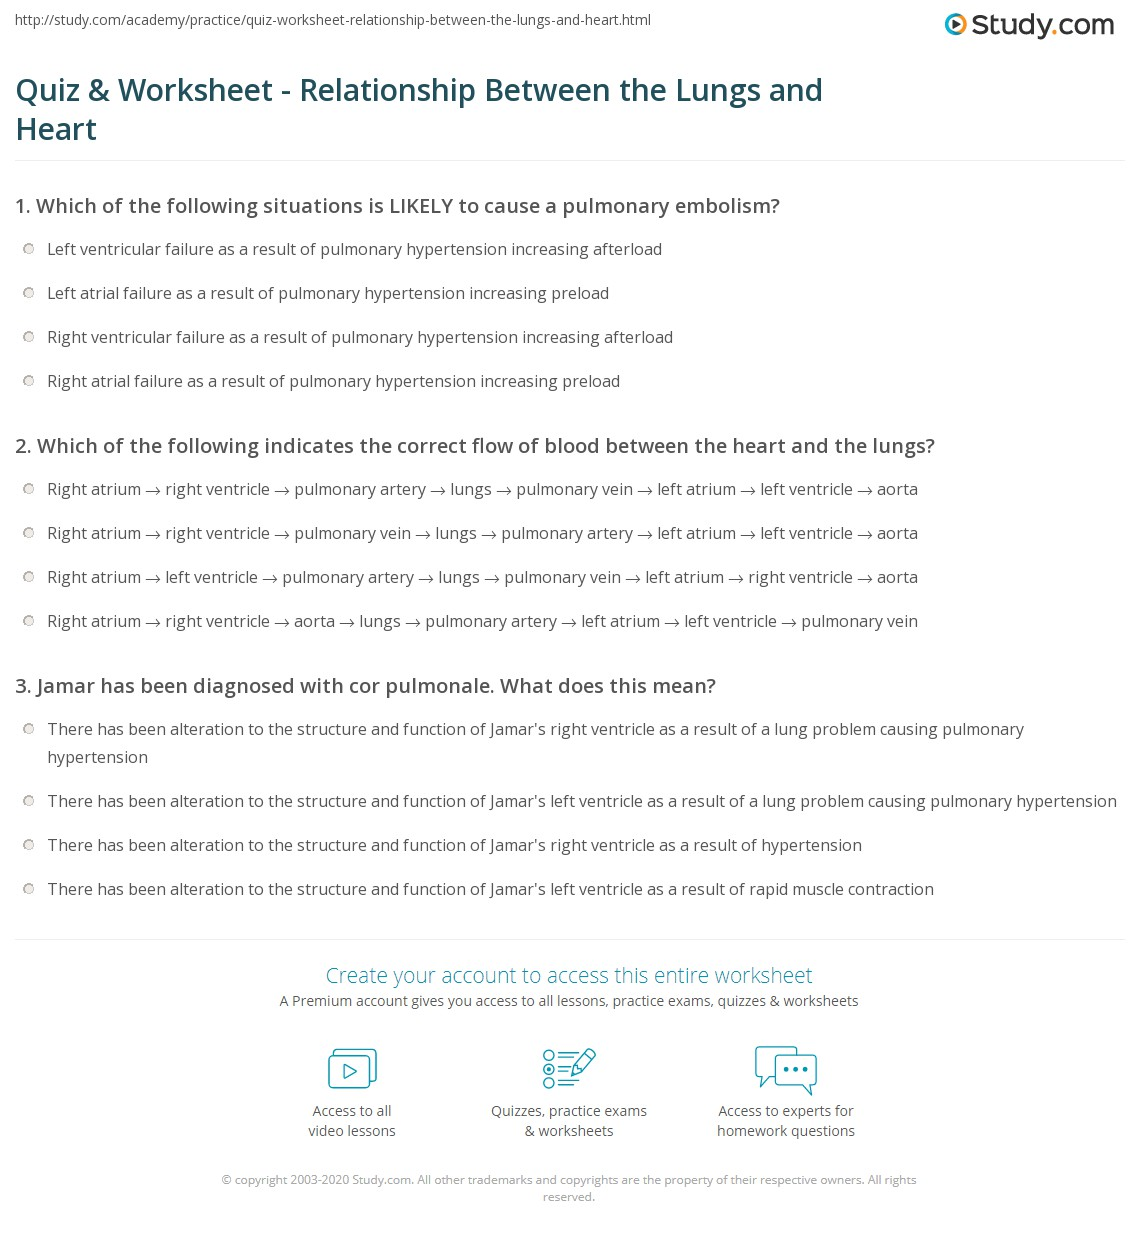 quiz worksheet relationship between the lungs and heart. Black Bedroom Furniture Sets. Home Design Ideas